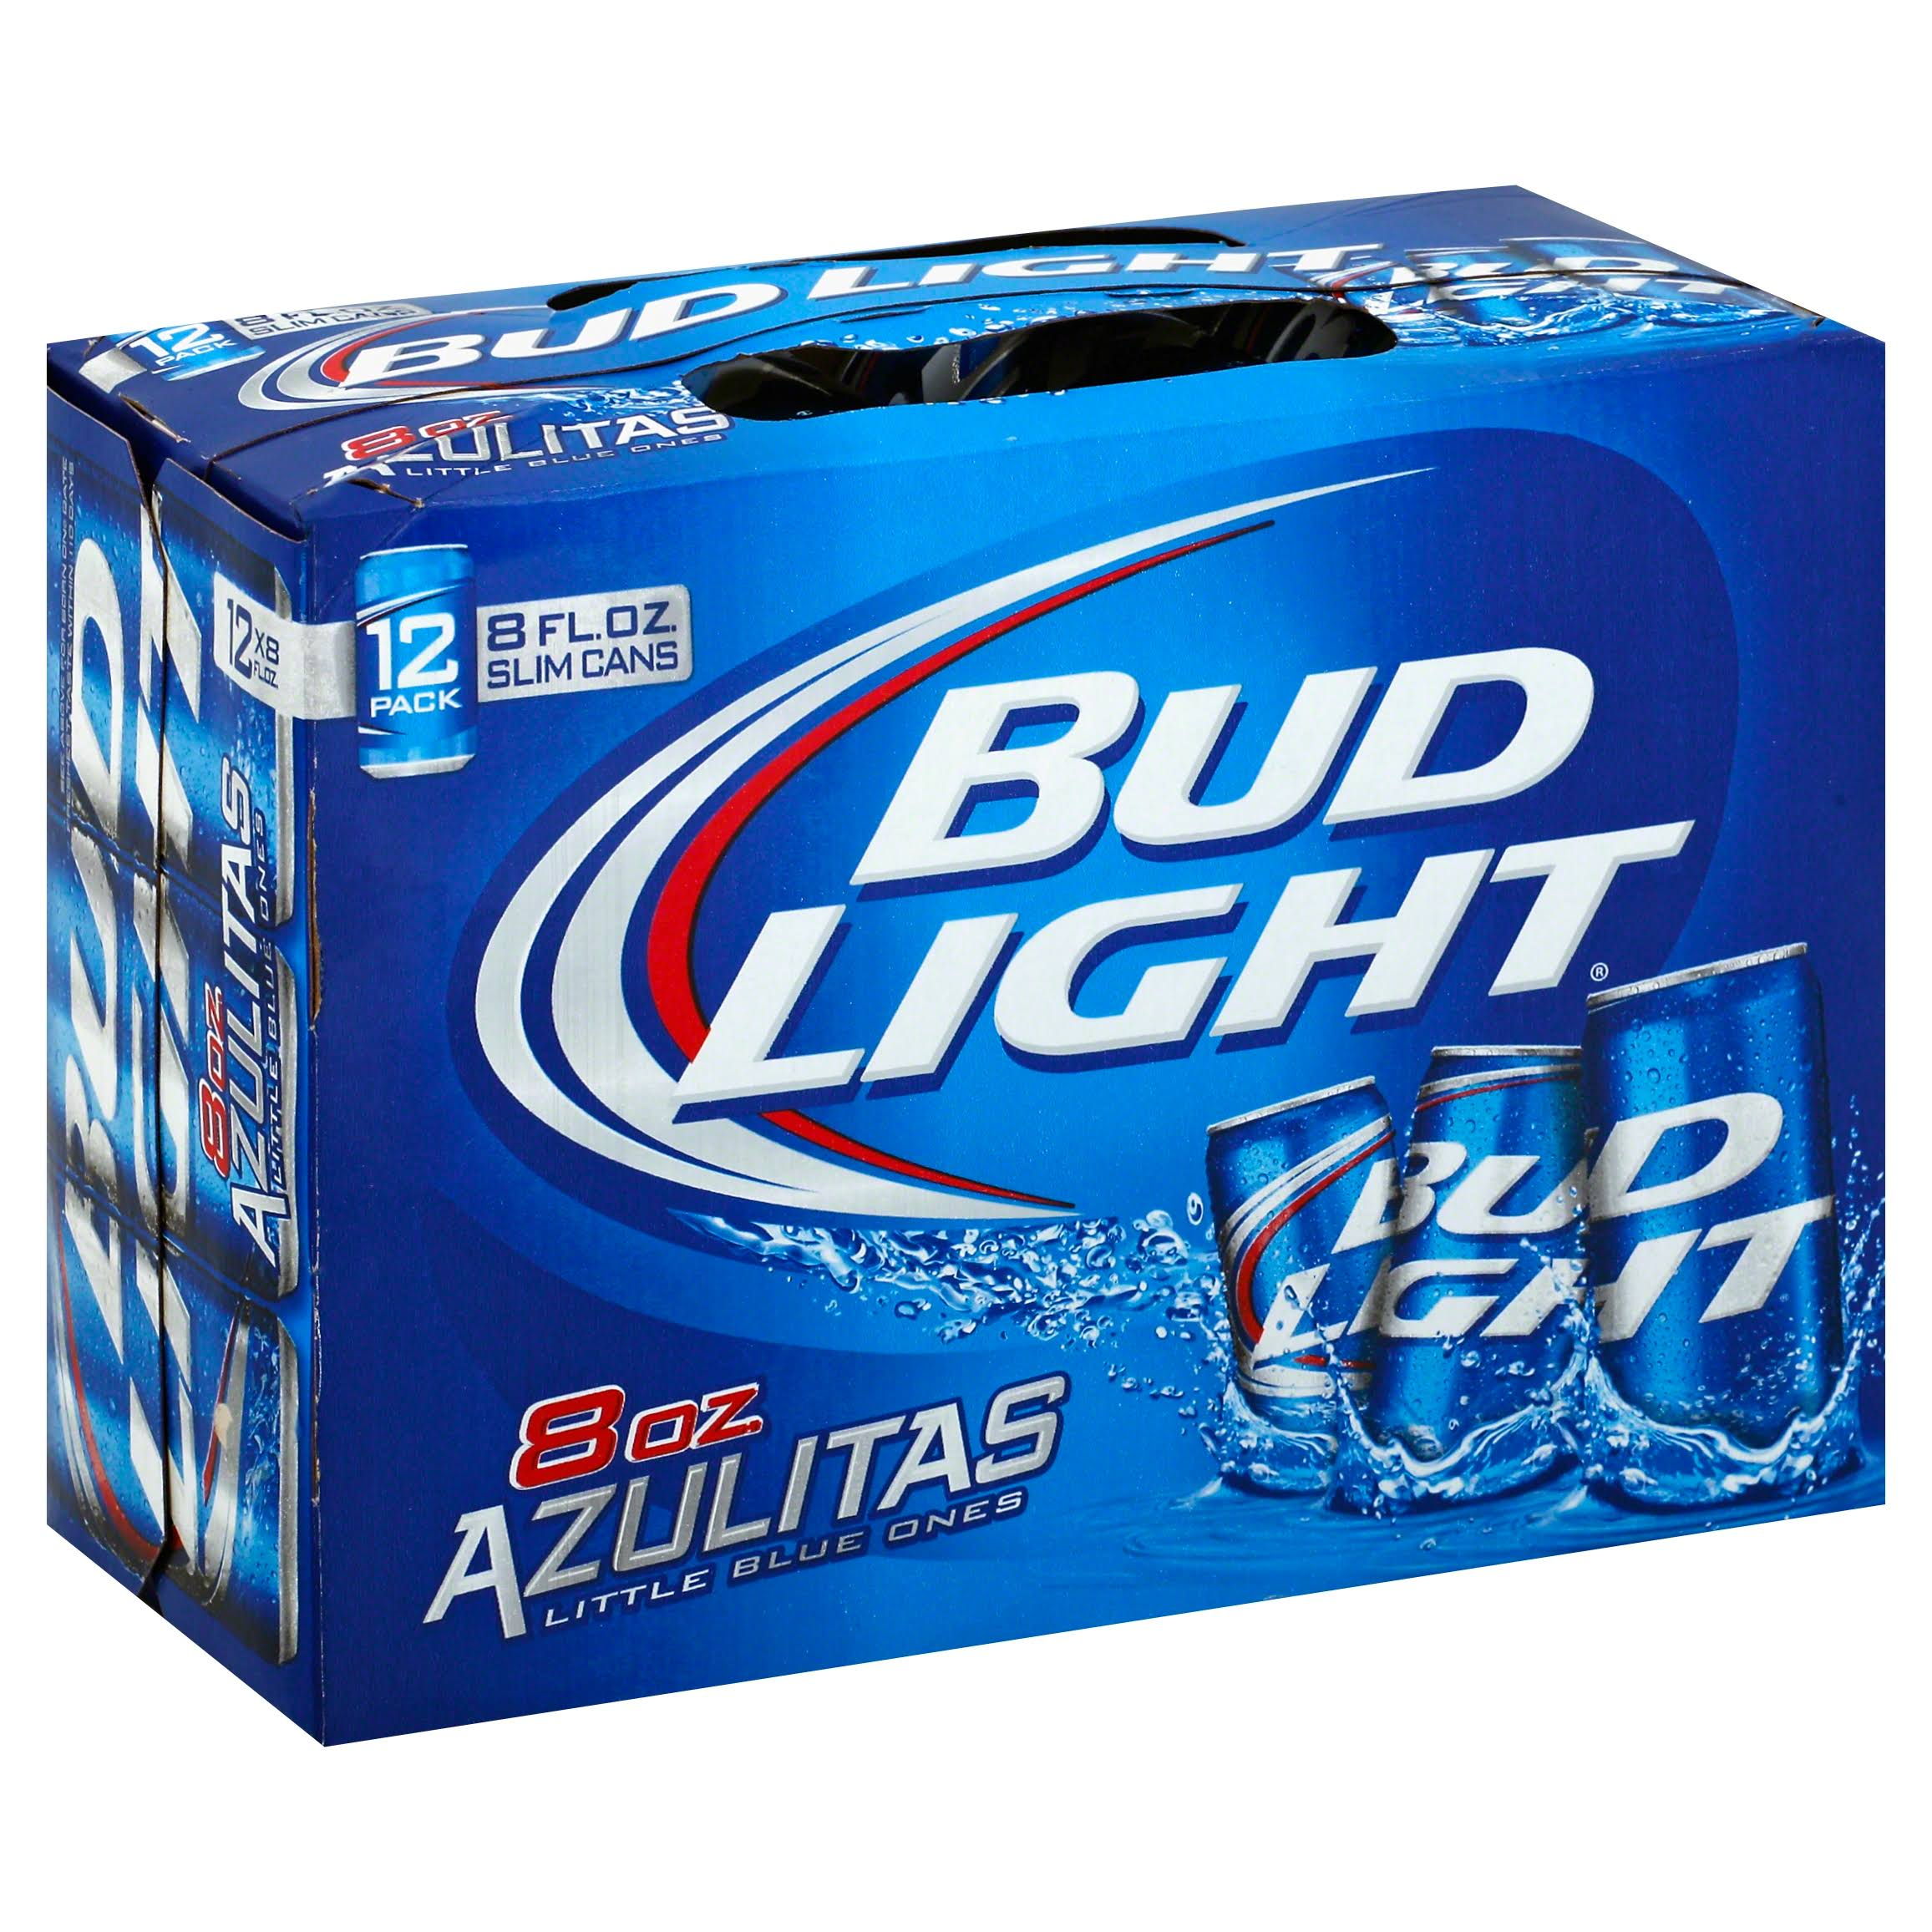 Bud Light Beer - 12 Pack, Slim Cans, 8oz